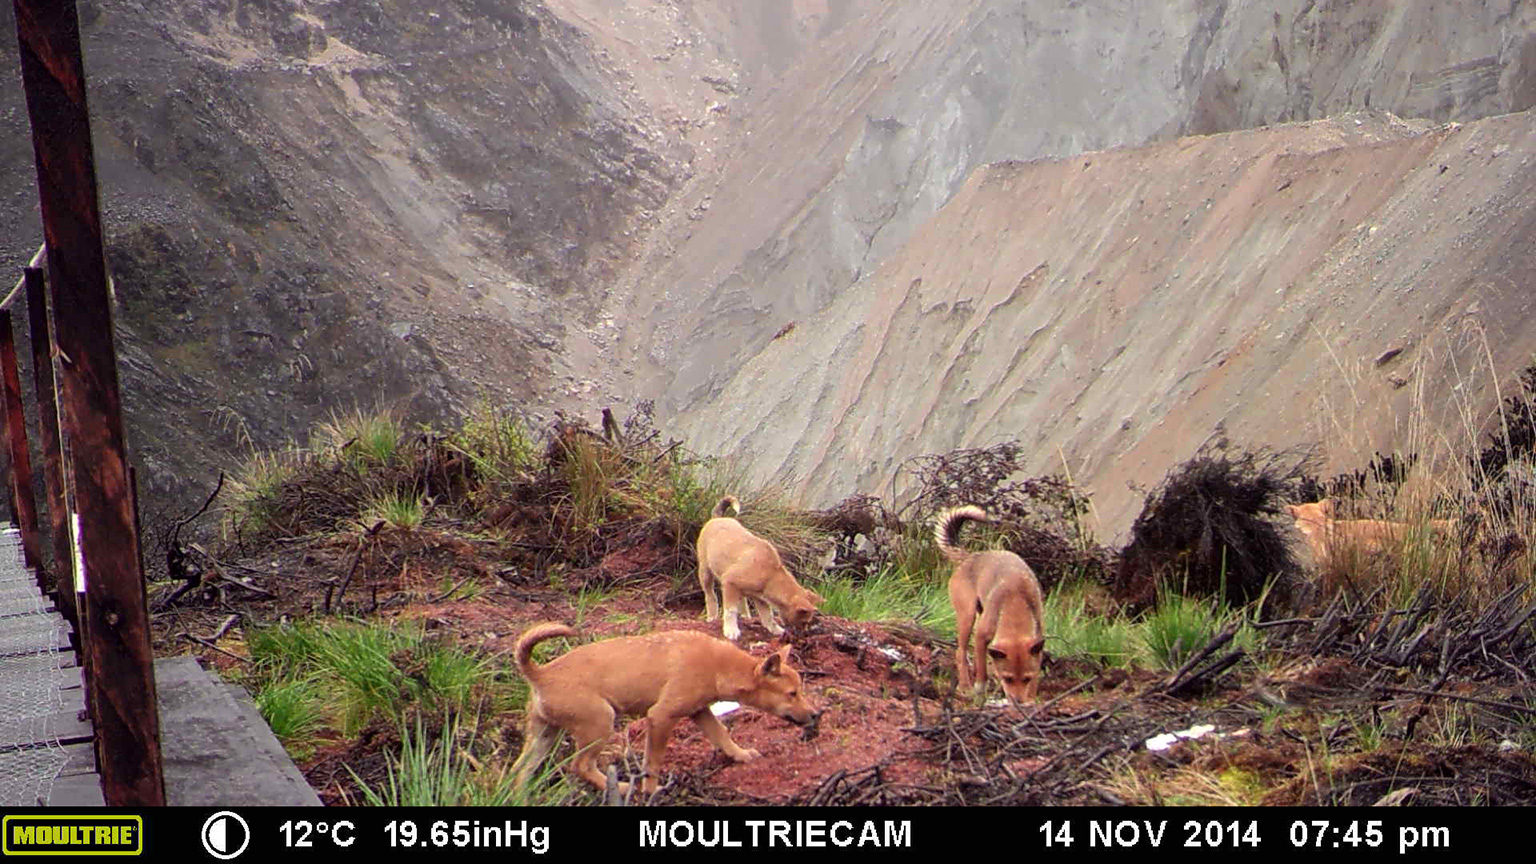 The only known wild population of New Guinea singing dogs lives at 4,300 meters (14,000 feet) near Grasberg mine on the Indonesian side of New Guinea. Photo credit: James McIntyre